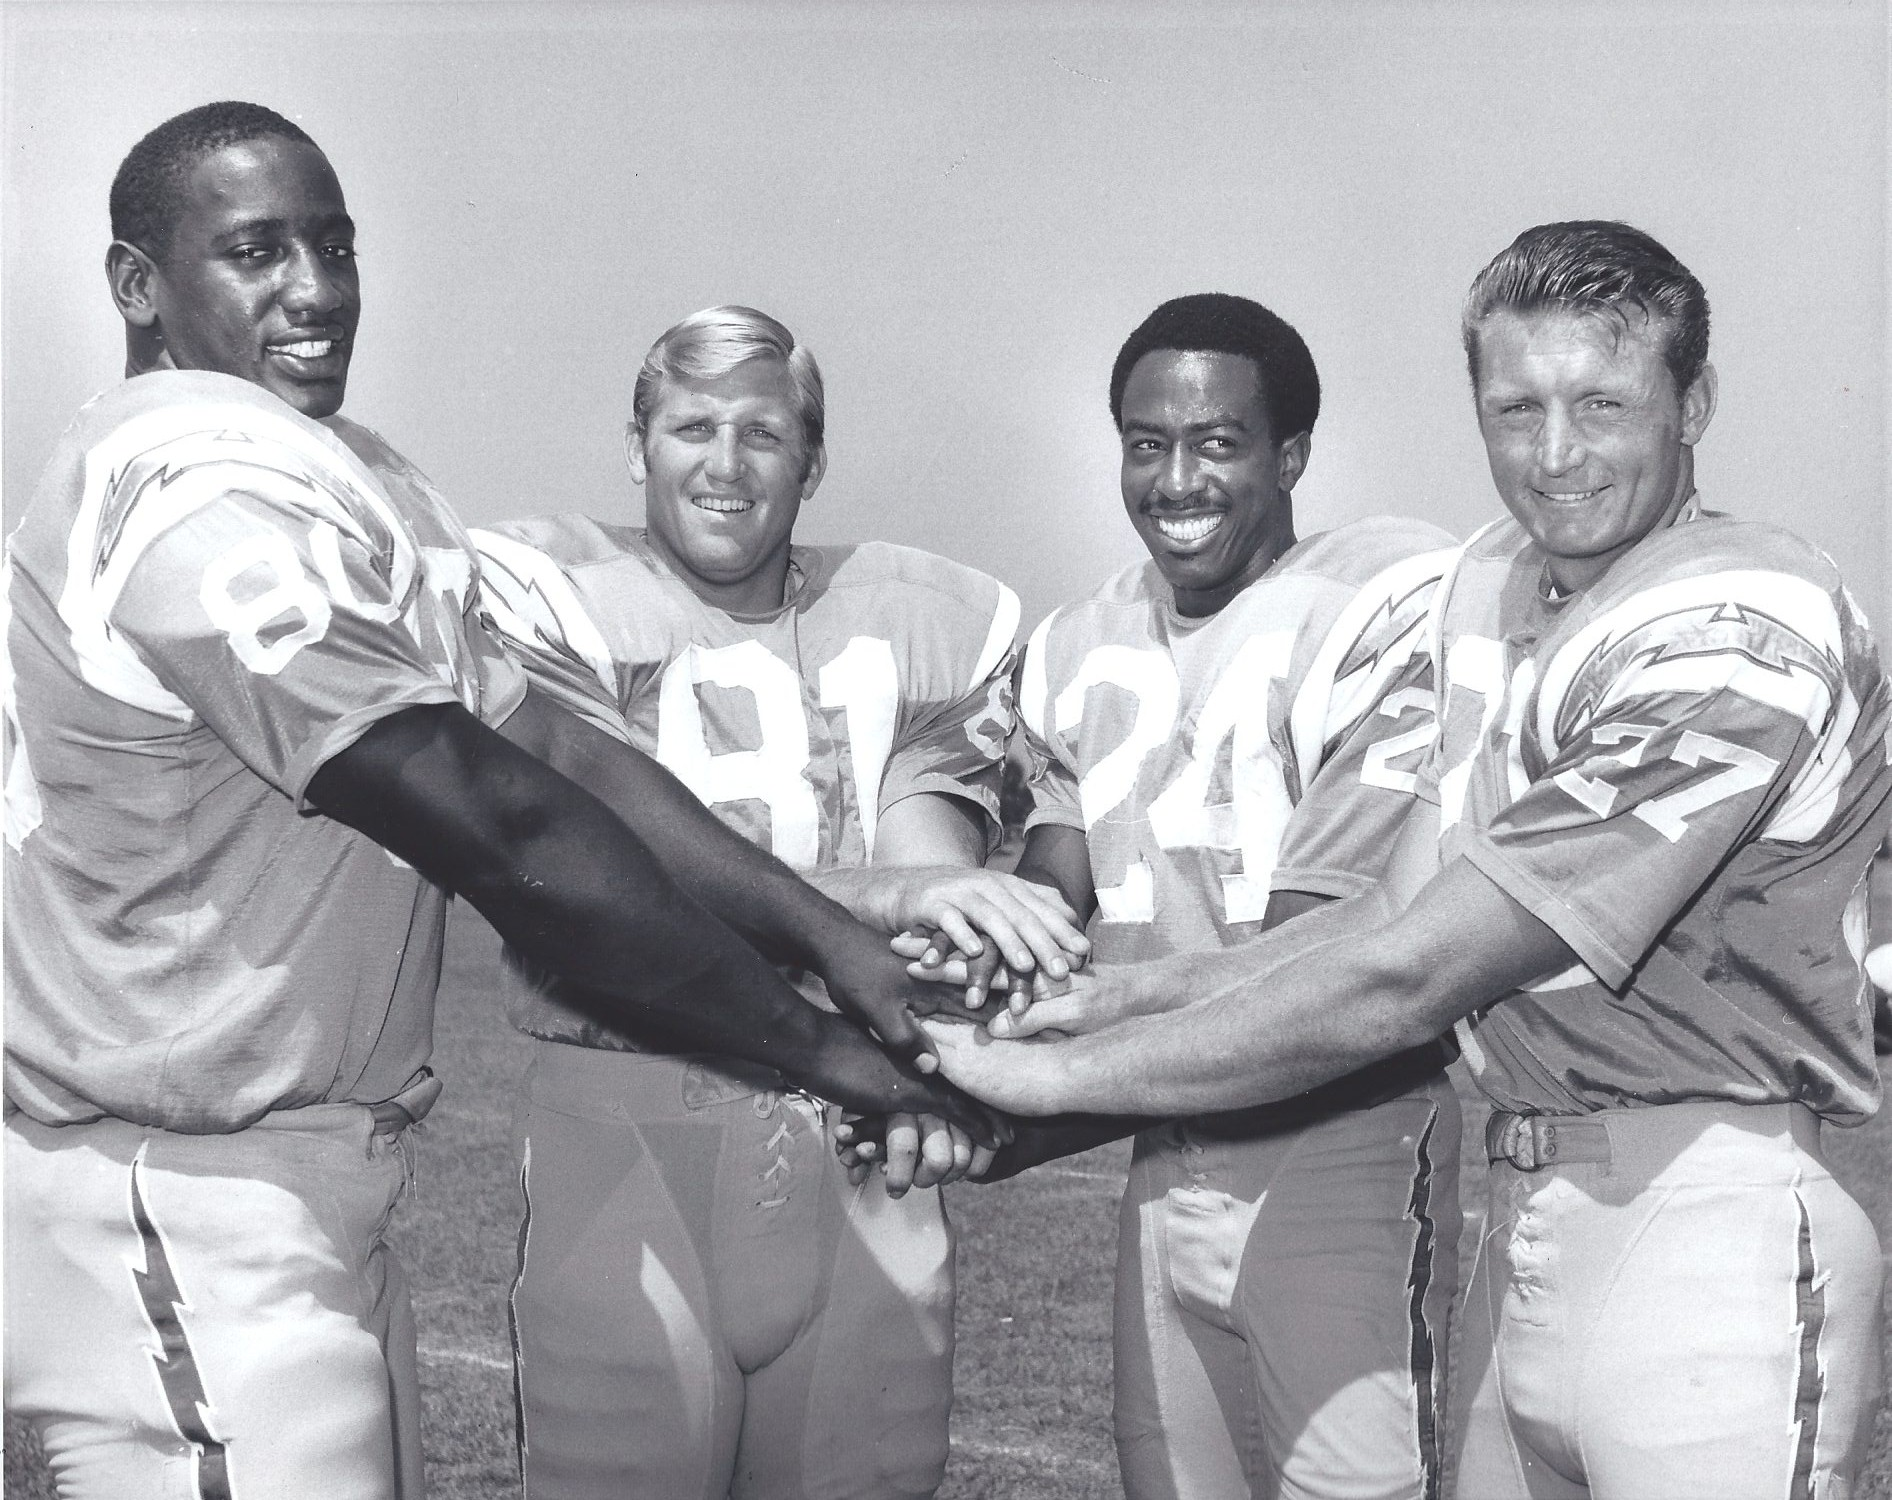 Staggs (second from left) and former San Diego State teammates Houston Ridge, Bobby Howard, and Gary Garrison (from left) were reunited with San Diego Chargers.